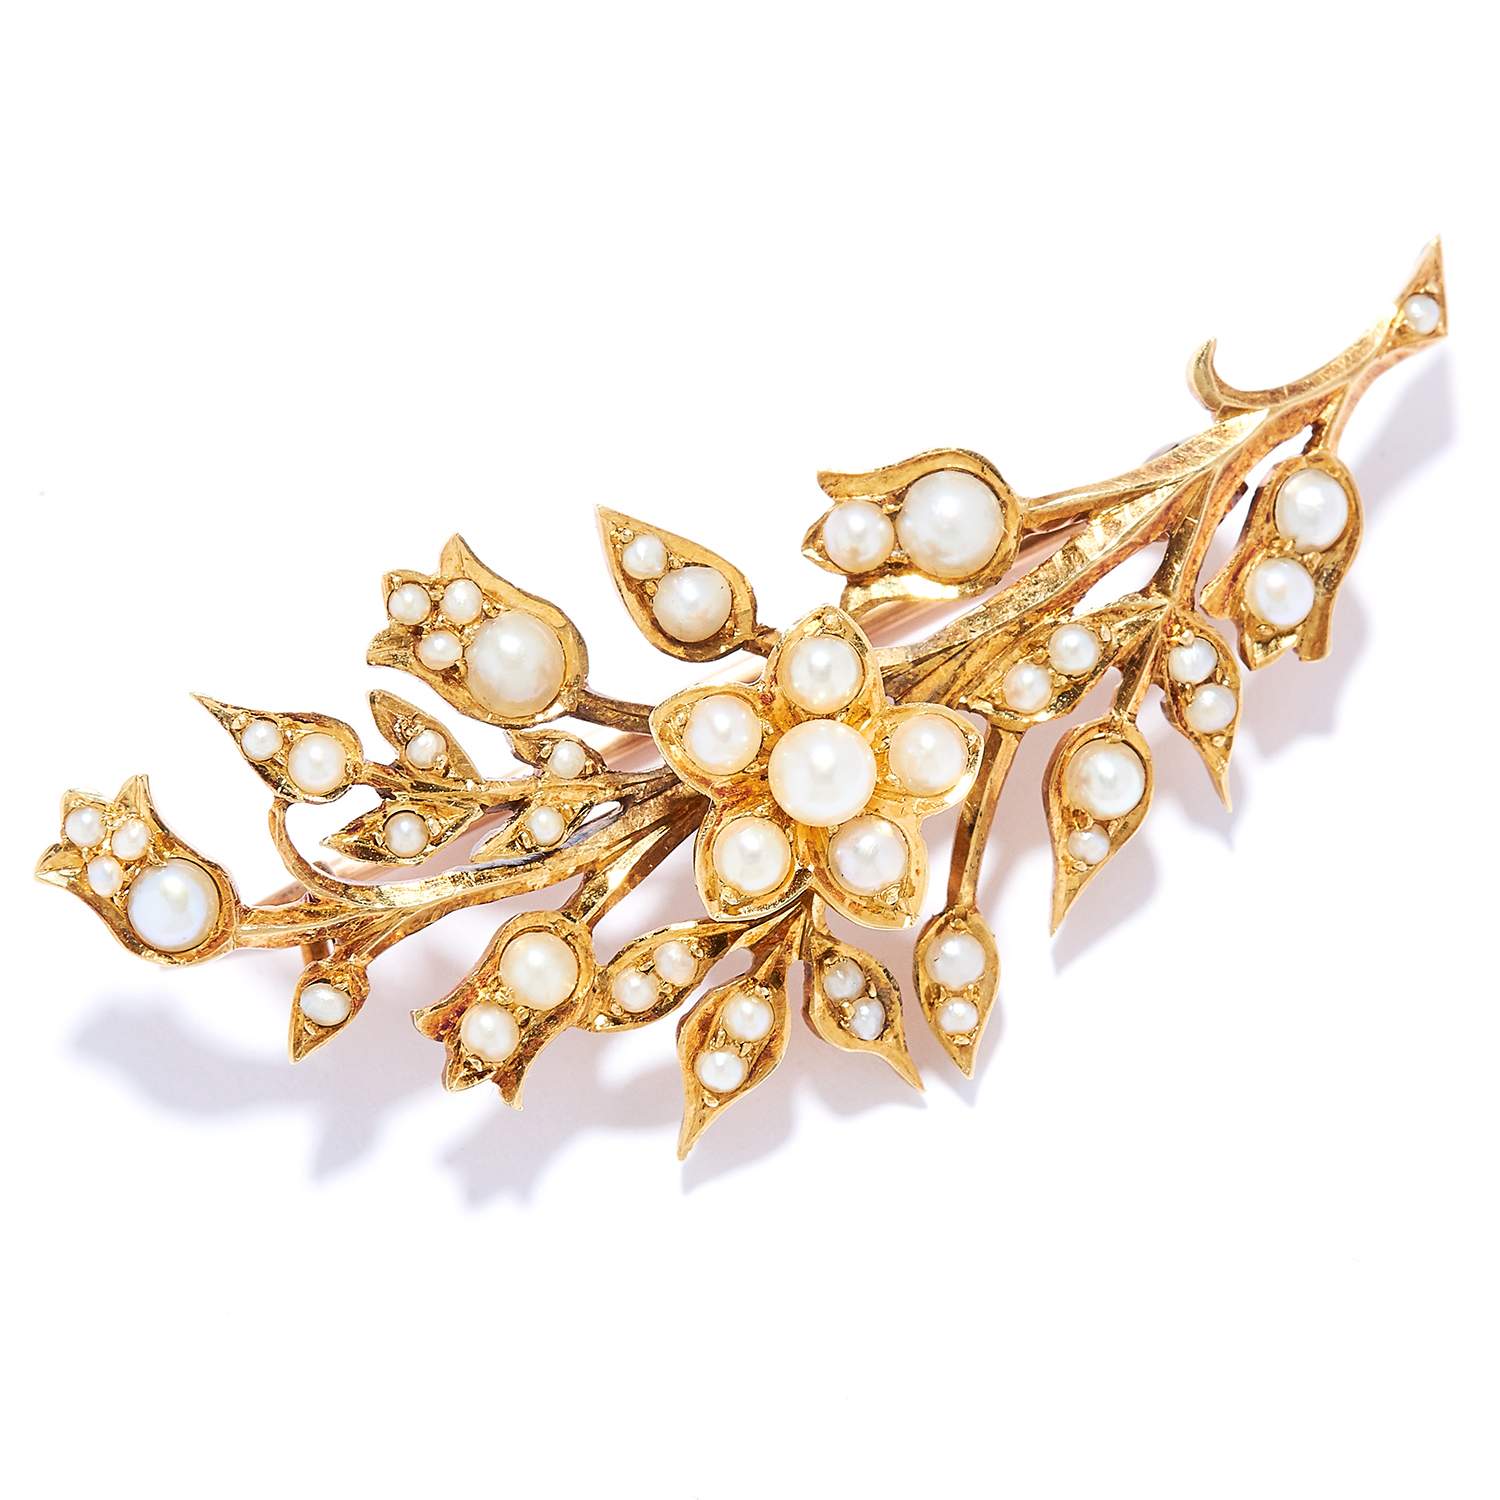 ANTIQUE SEED PEARL BROOCH in 15CT yellow gold, in flower spray motif set with seed pearls, stamped